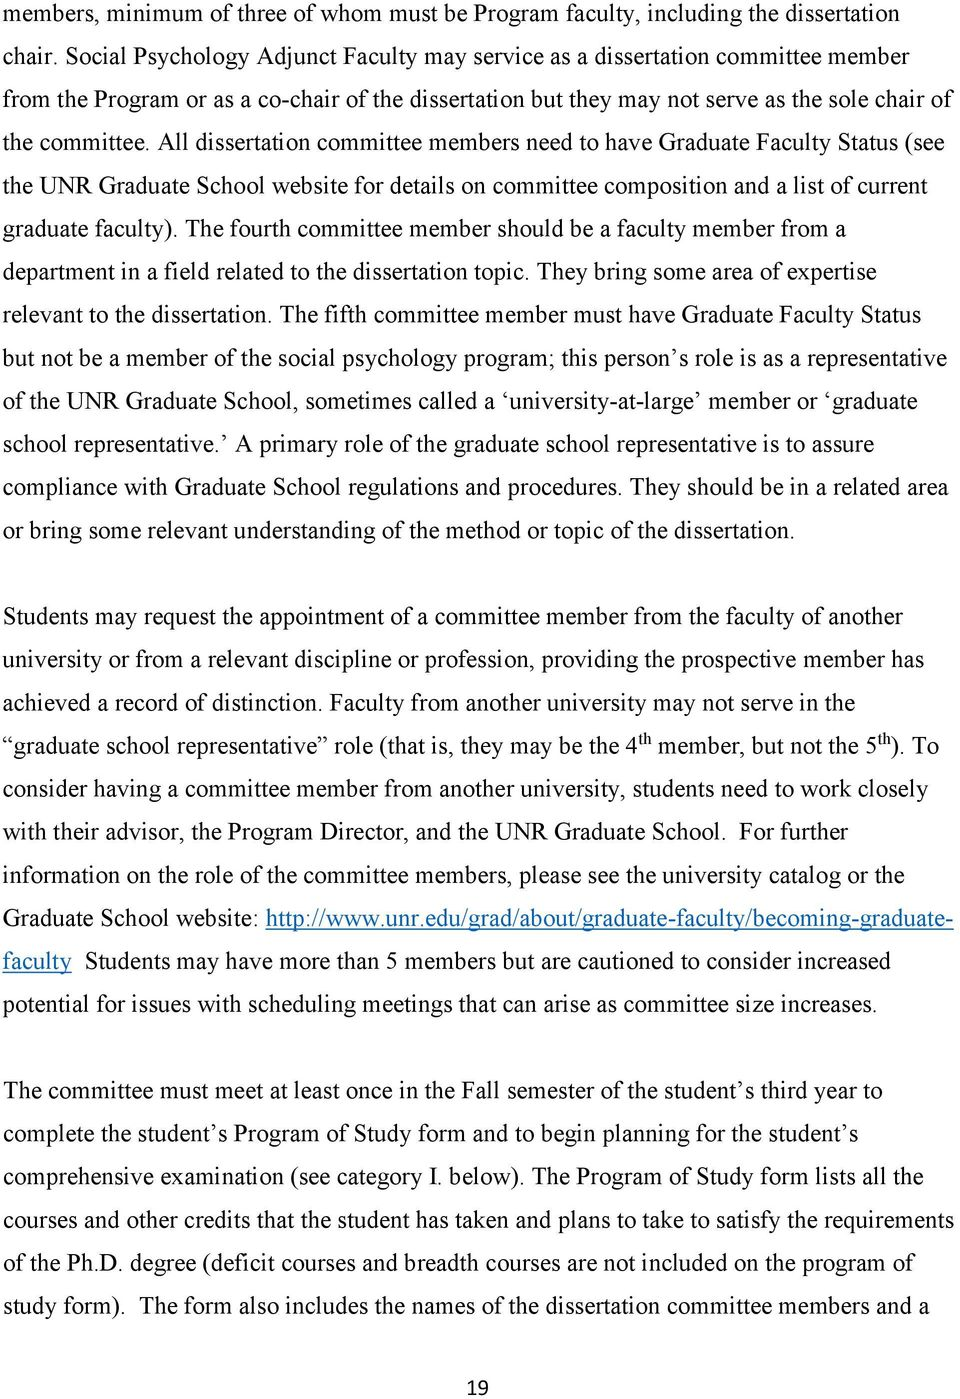 All dissertation committee members need to have Graduate Faculty Status (see the UNR Graduate School website for details on committee composition and a list of current graduate faculty).